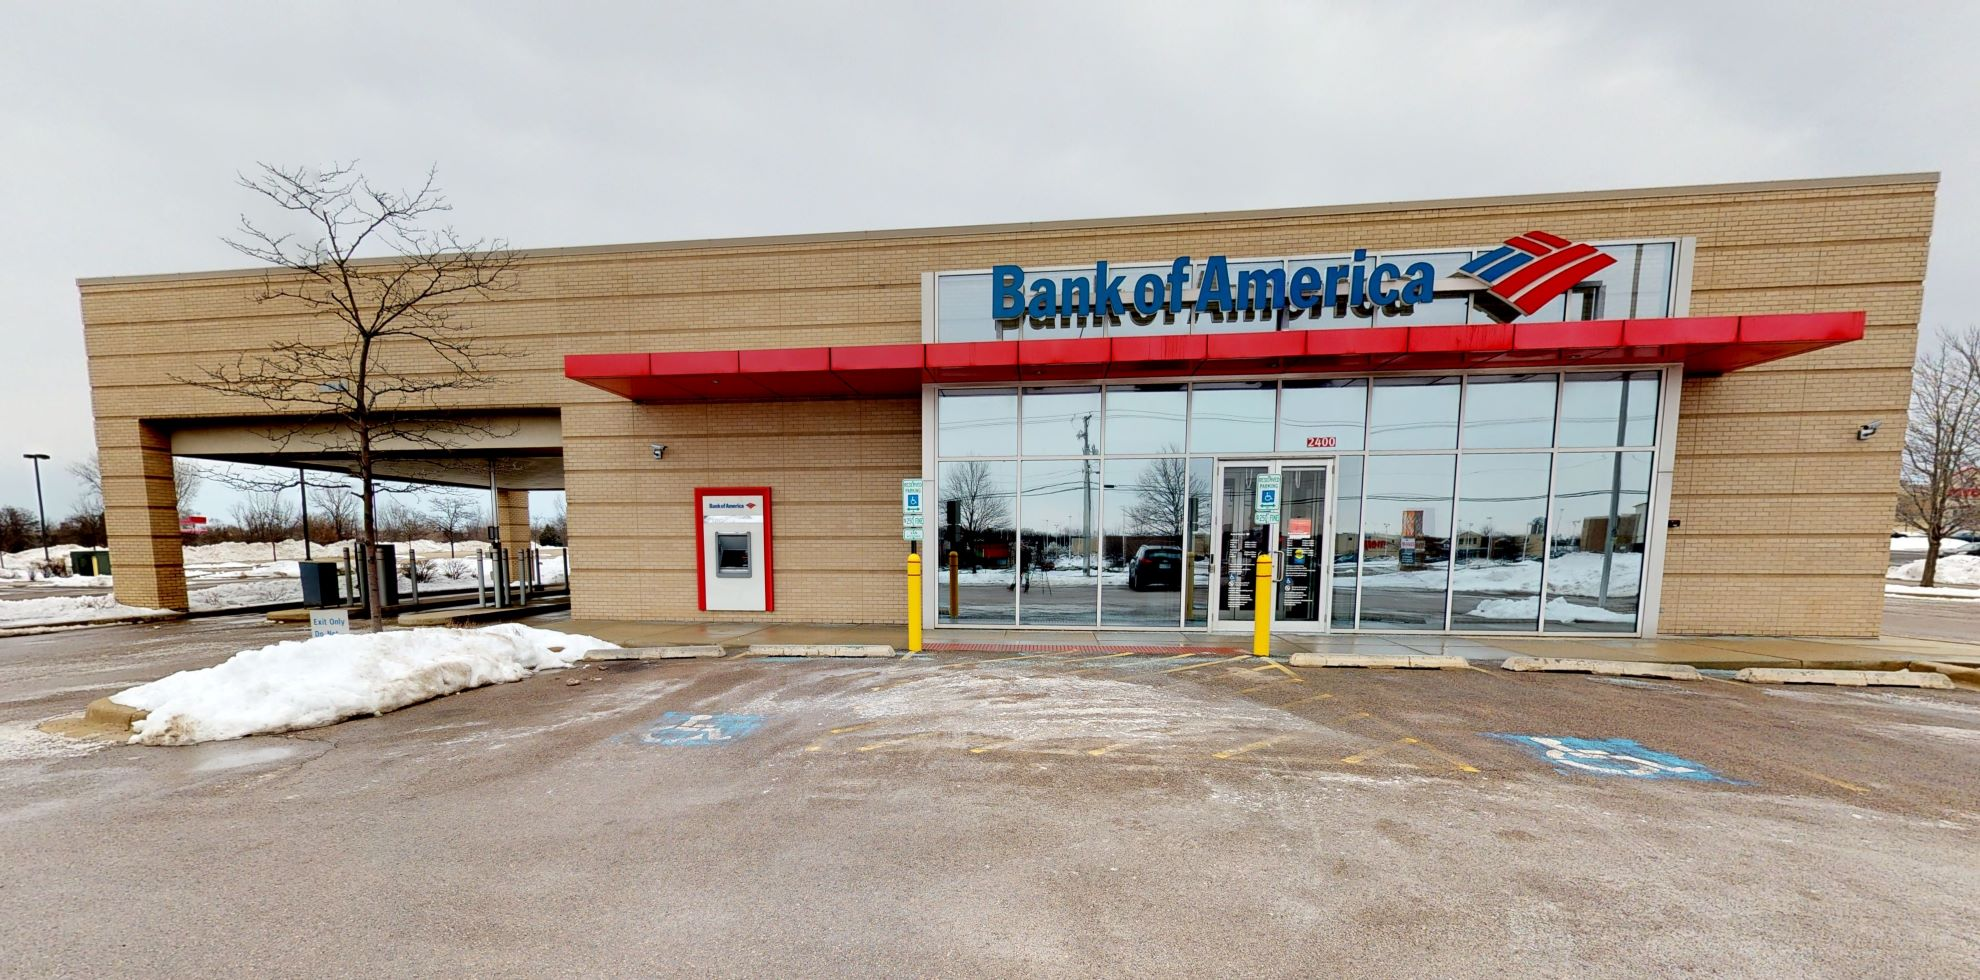 Bank of America financial center with drive-thru ATM and teller | 2400 N Richmond Rd 1st Floor, McHenry, IL 60051